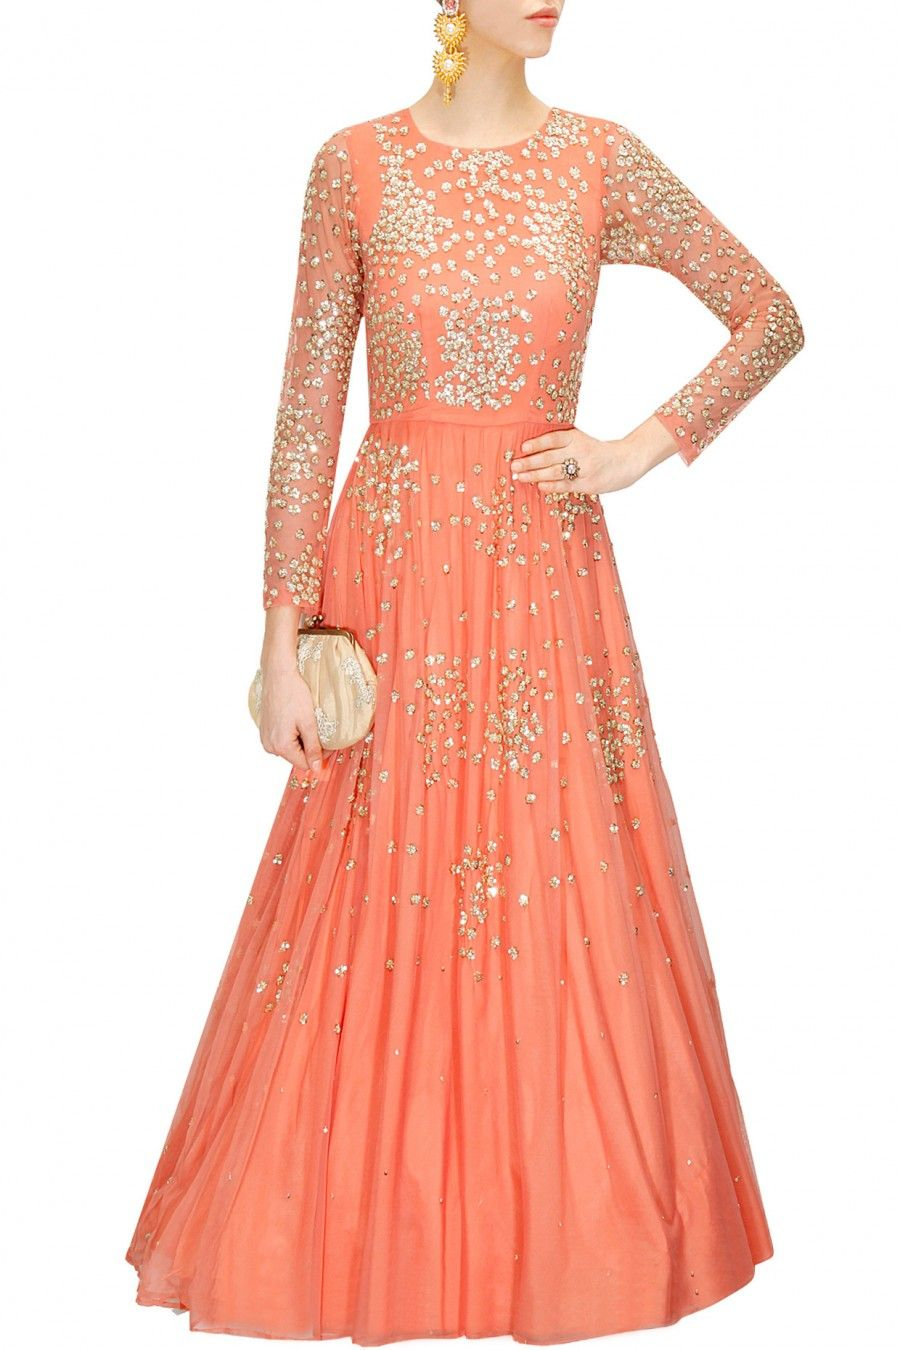 fe31b00930a9f Coral peach shimmer anarkali gown available only at Pernia's Pop-Up Shop.